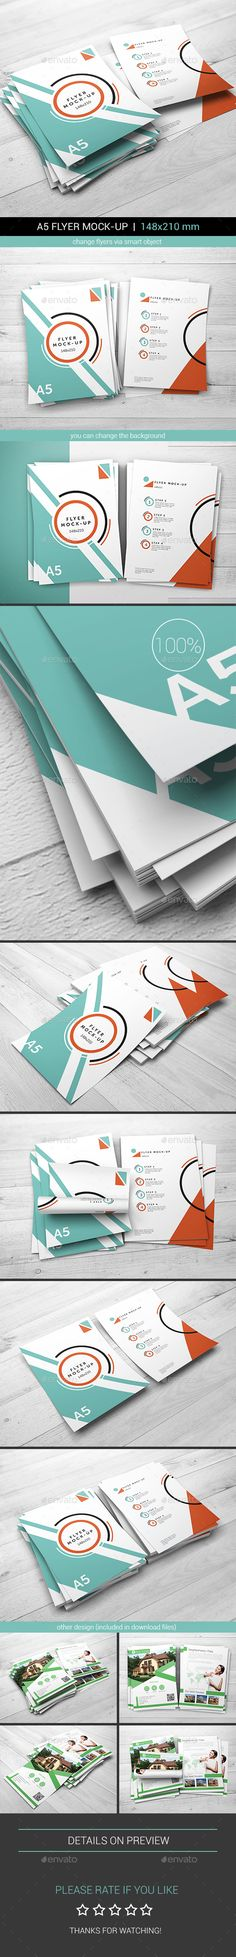 A5 Flyer MockUp — Photoshop PSD #realism #present • Available here → https://graphicriver.net/item/a5-flyer-mockup/17971307?ref=pxcr